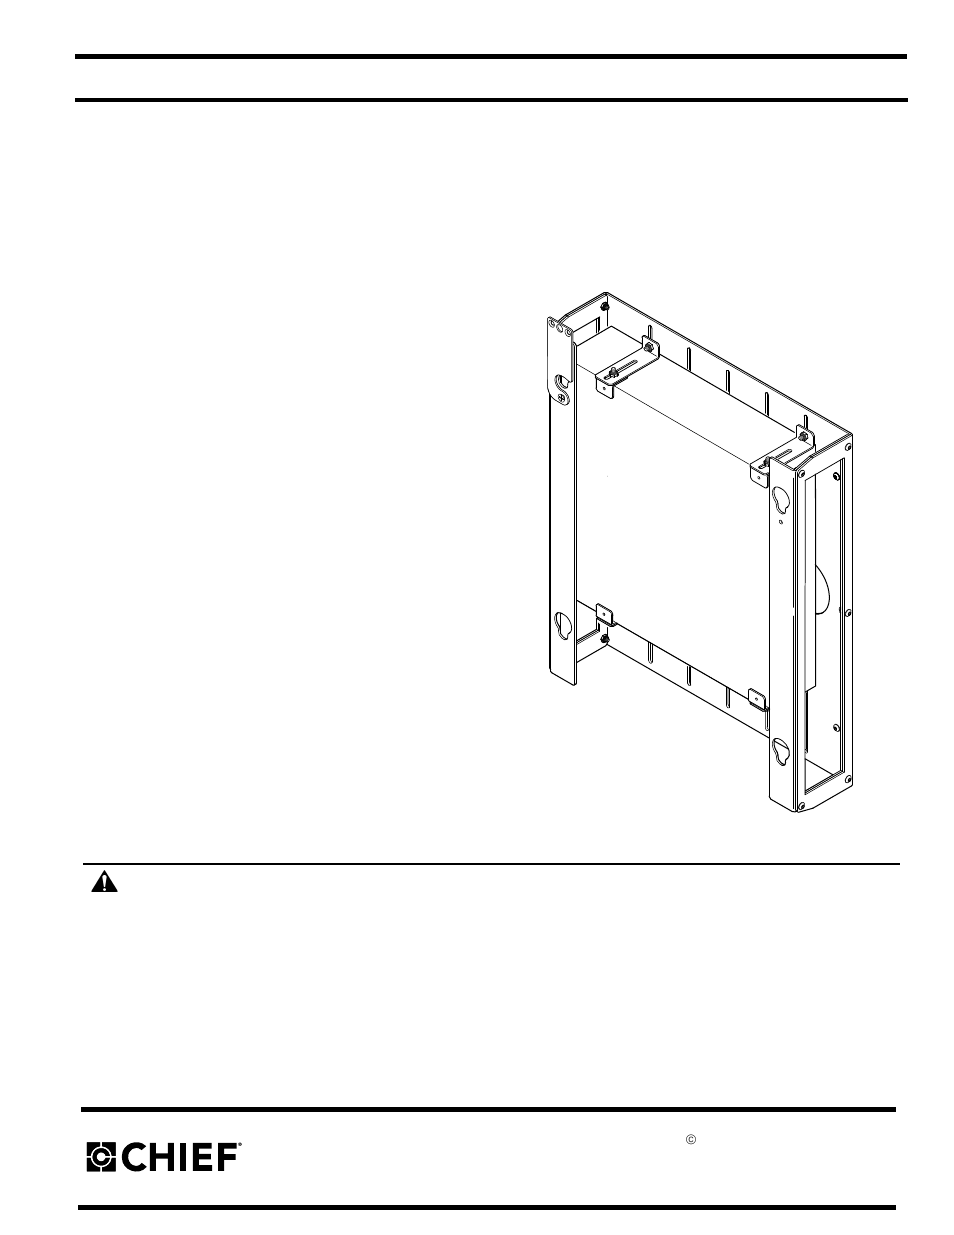 chief manufacturing pac 251 user manual 6 pages rh manualsdir com Manual Manufacturing Process Manufacturing by Hand